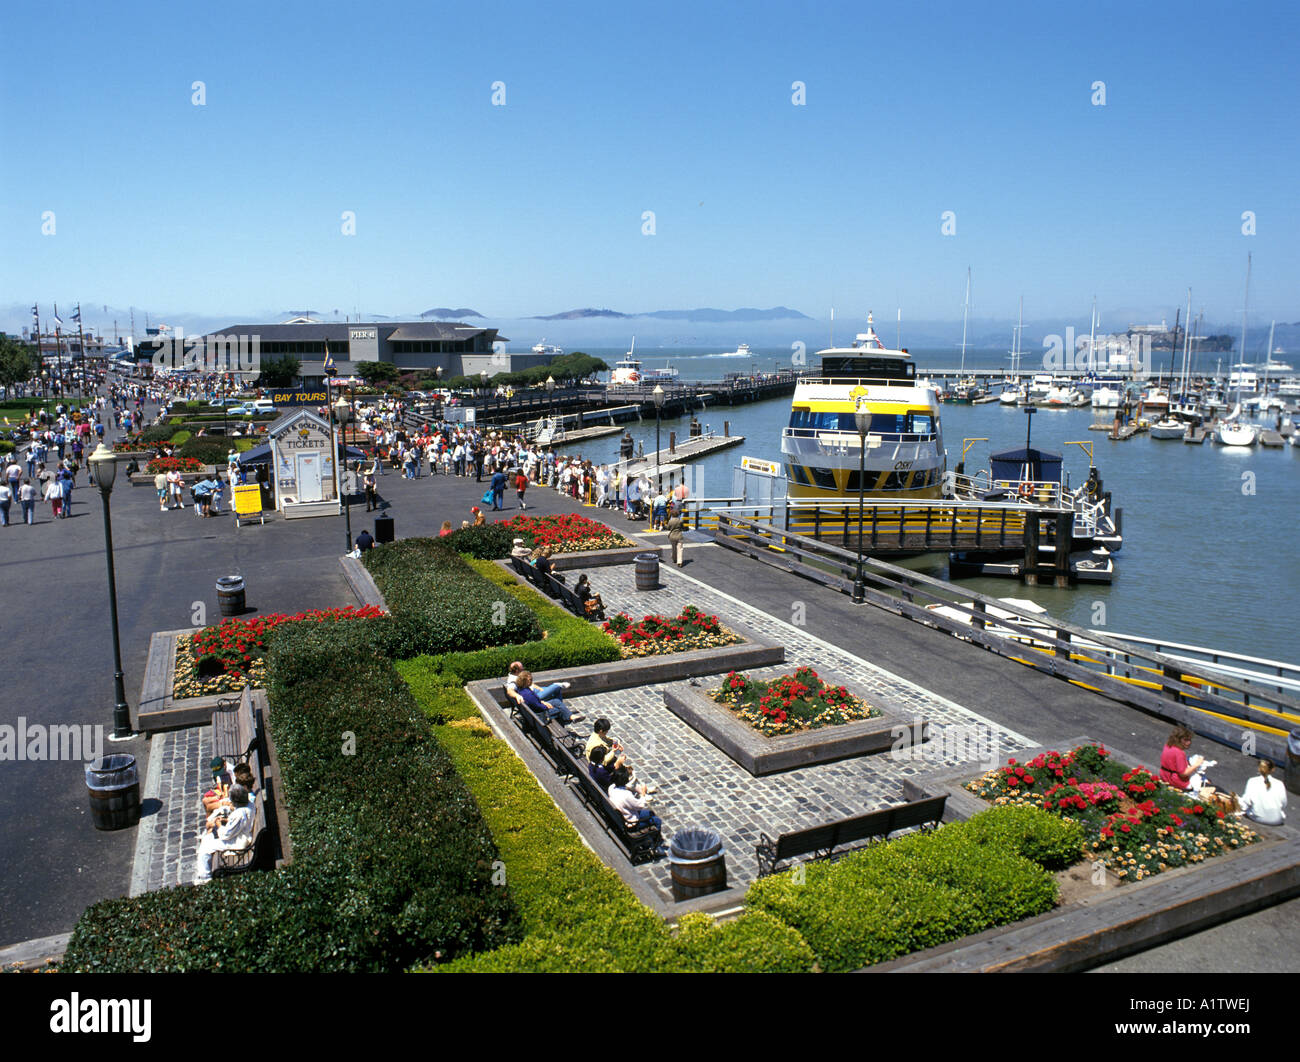 A tourist ferry moored at Pier 39 in San Francisco bay california usa - Stock Image